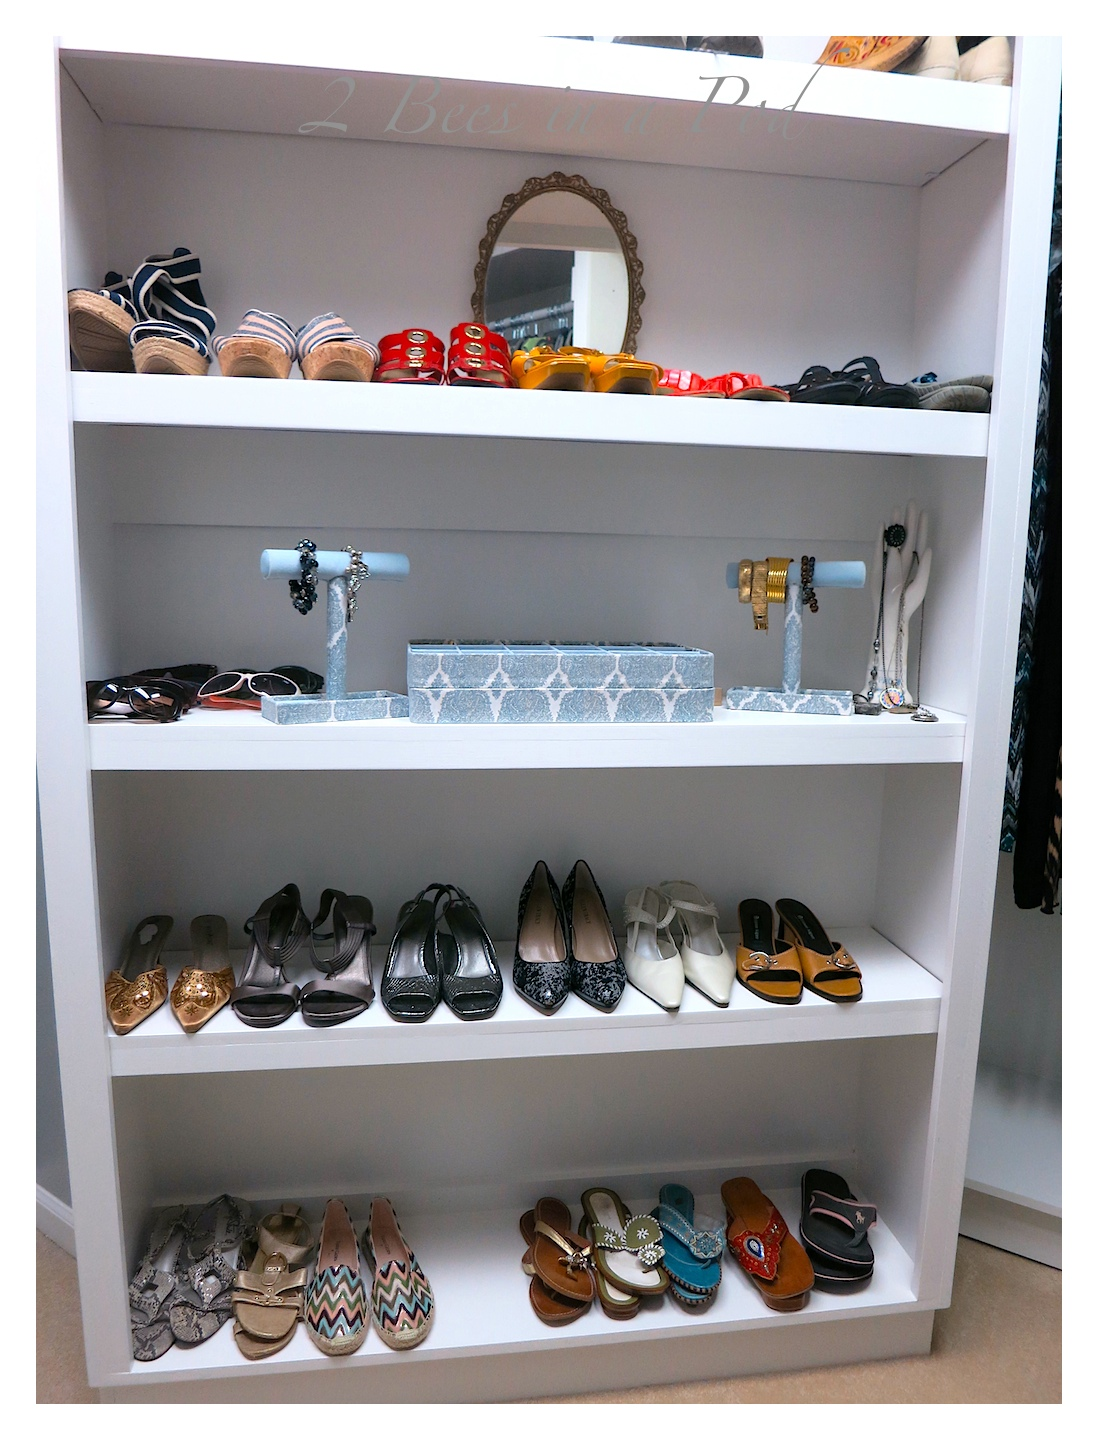 Master Closet Makeover Reveal - total transformation with a little reworking - so much more room for storage and clothing.